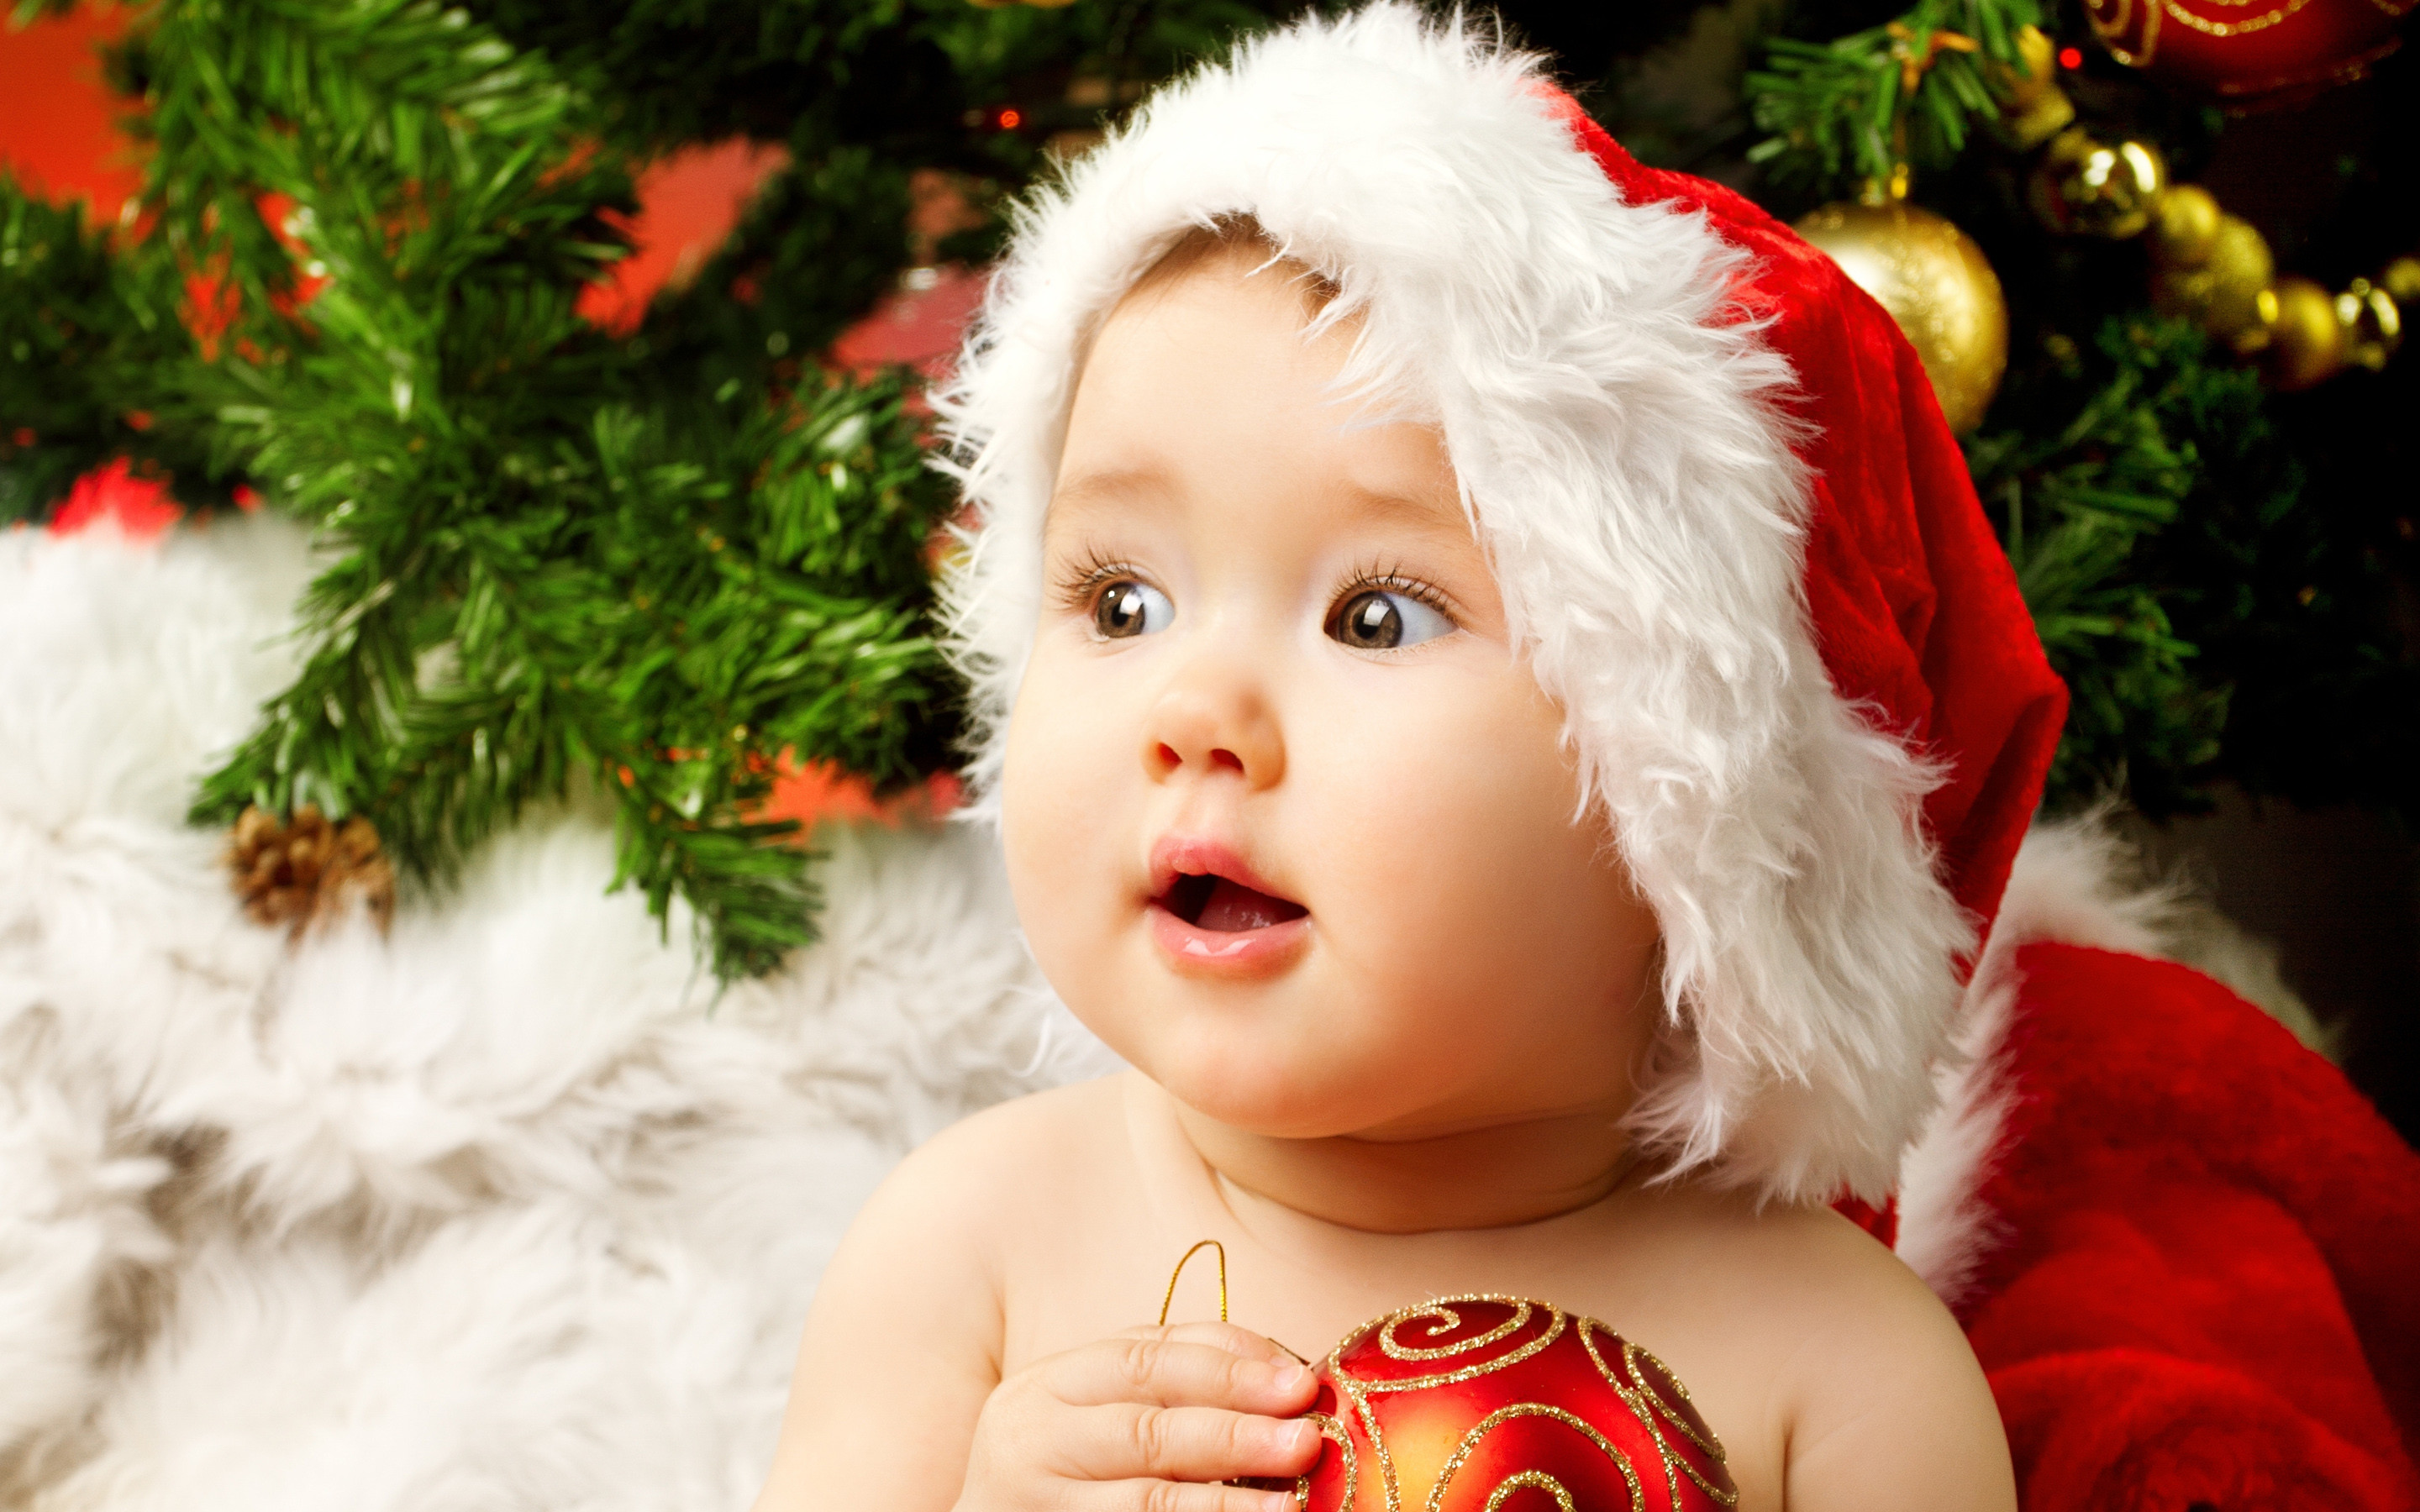 Cute Baby Boys Wallpapers HD Pictures One HD Wallpaper Pictures | HD  Wallpapers | Pinterest | Baby boy pictures, Boy images and Hd wallpaper